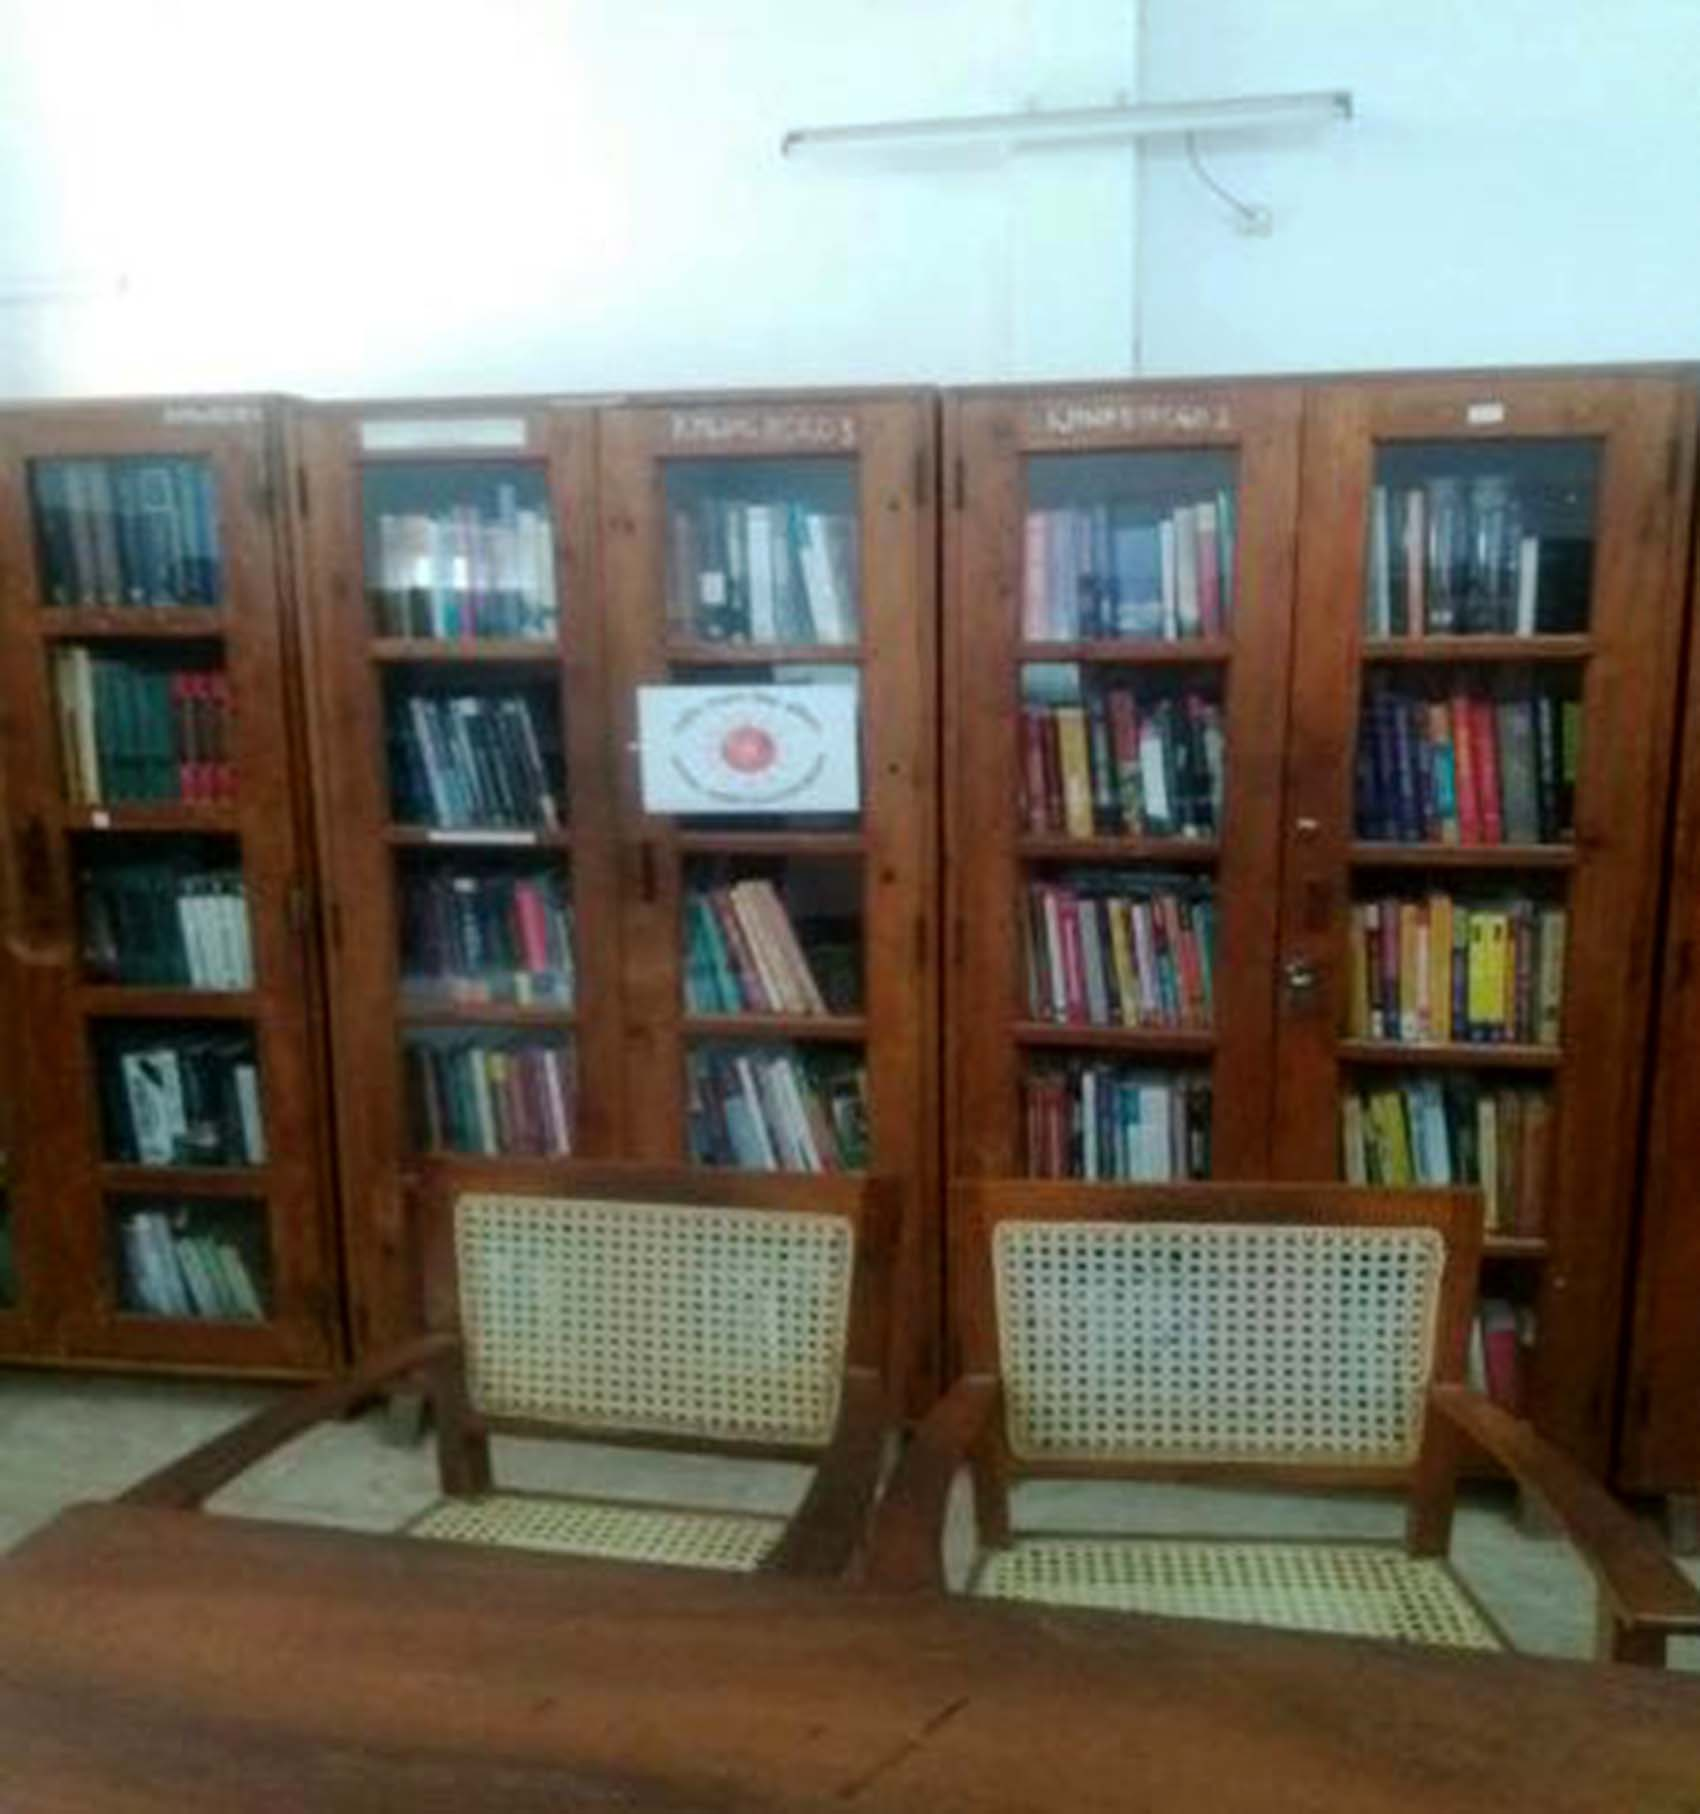 Books Shelf- Funded by RUSAjpg (2)